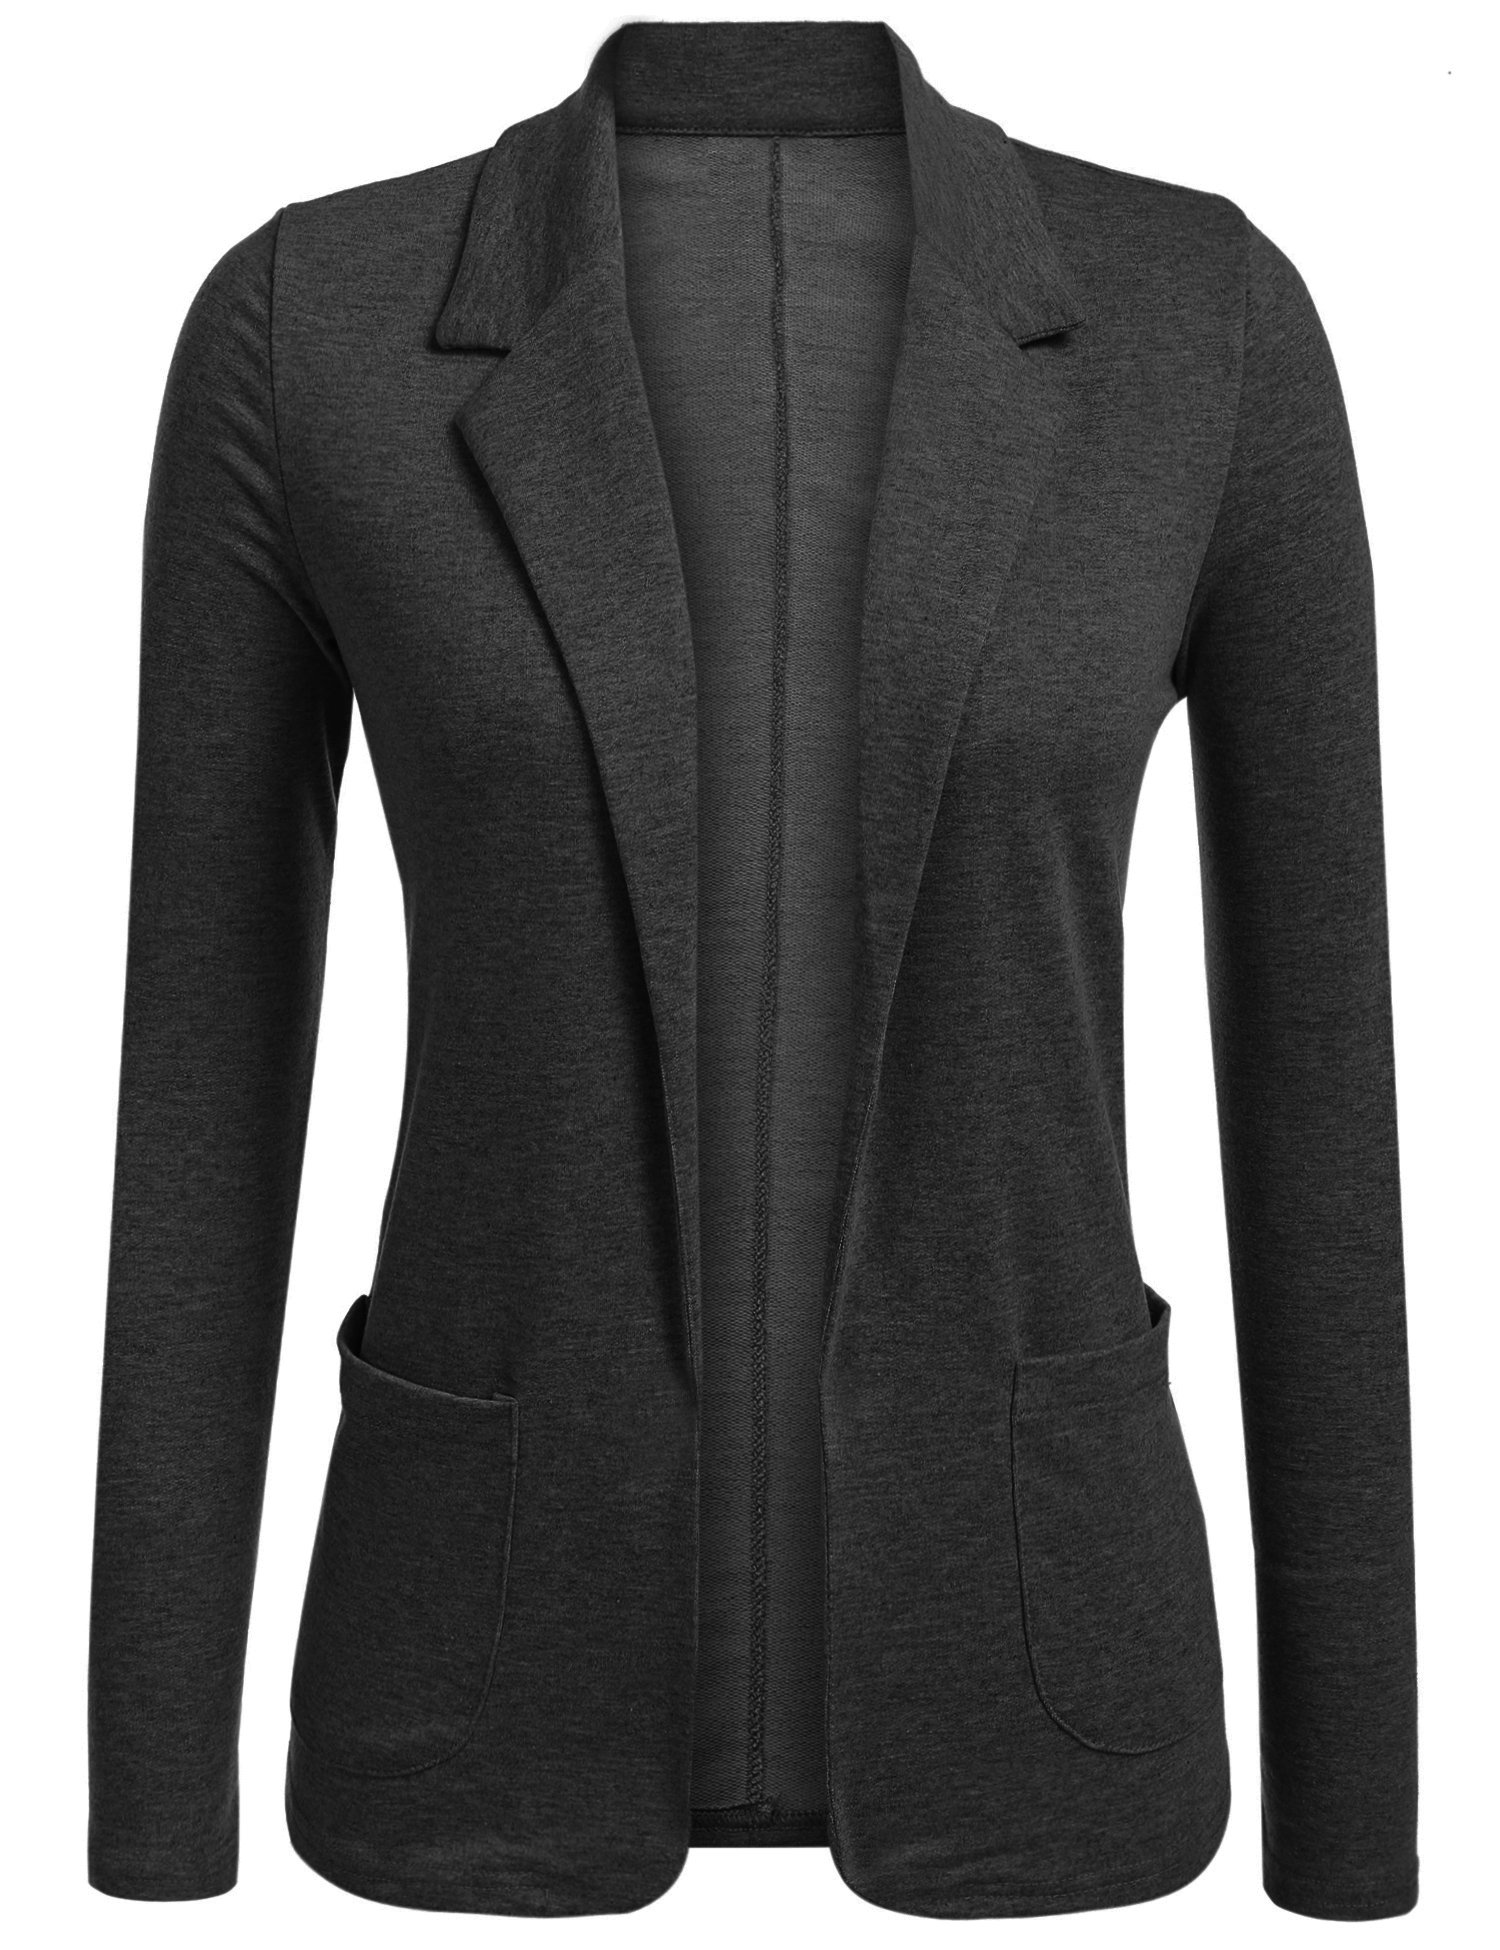 Concep Women's Casual Work Solid Color Knit Blazer Open Front Plus Size Cardigan Jacket (Black Grey, S)